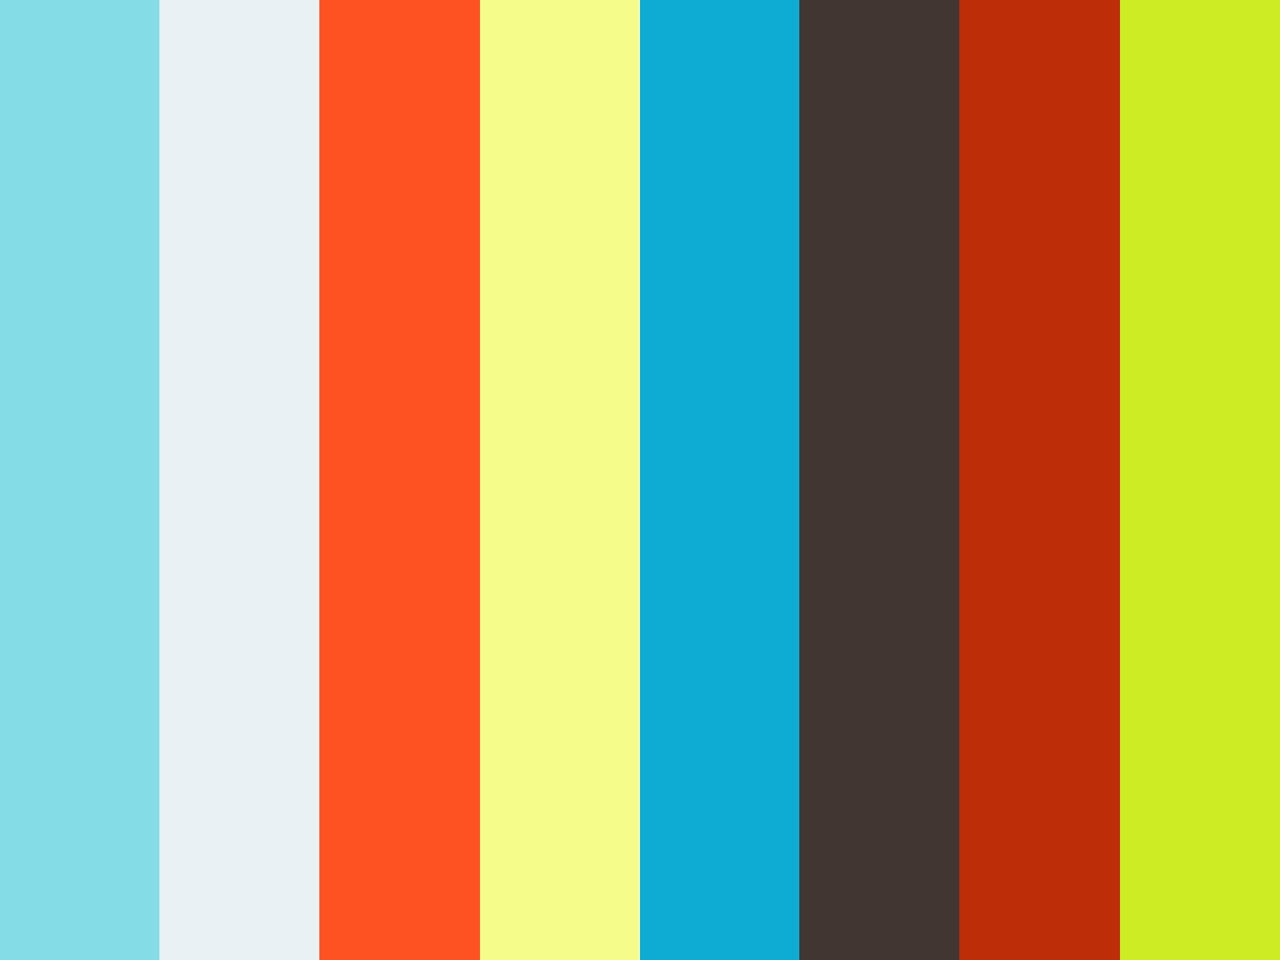 washingmachine of the future